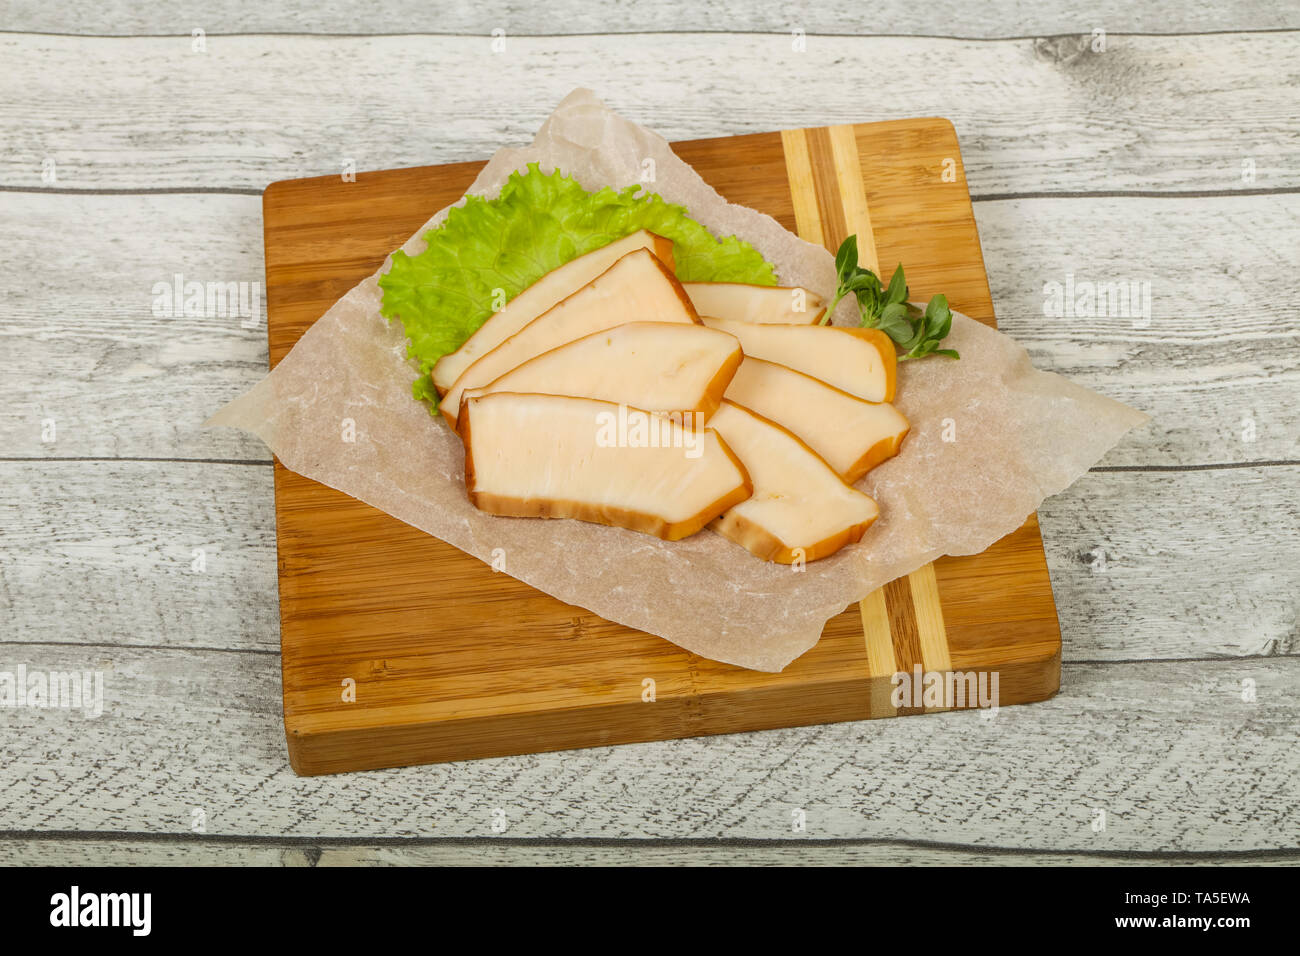 Sliced smoked squid served salad leaves - Stock Image